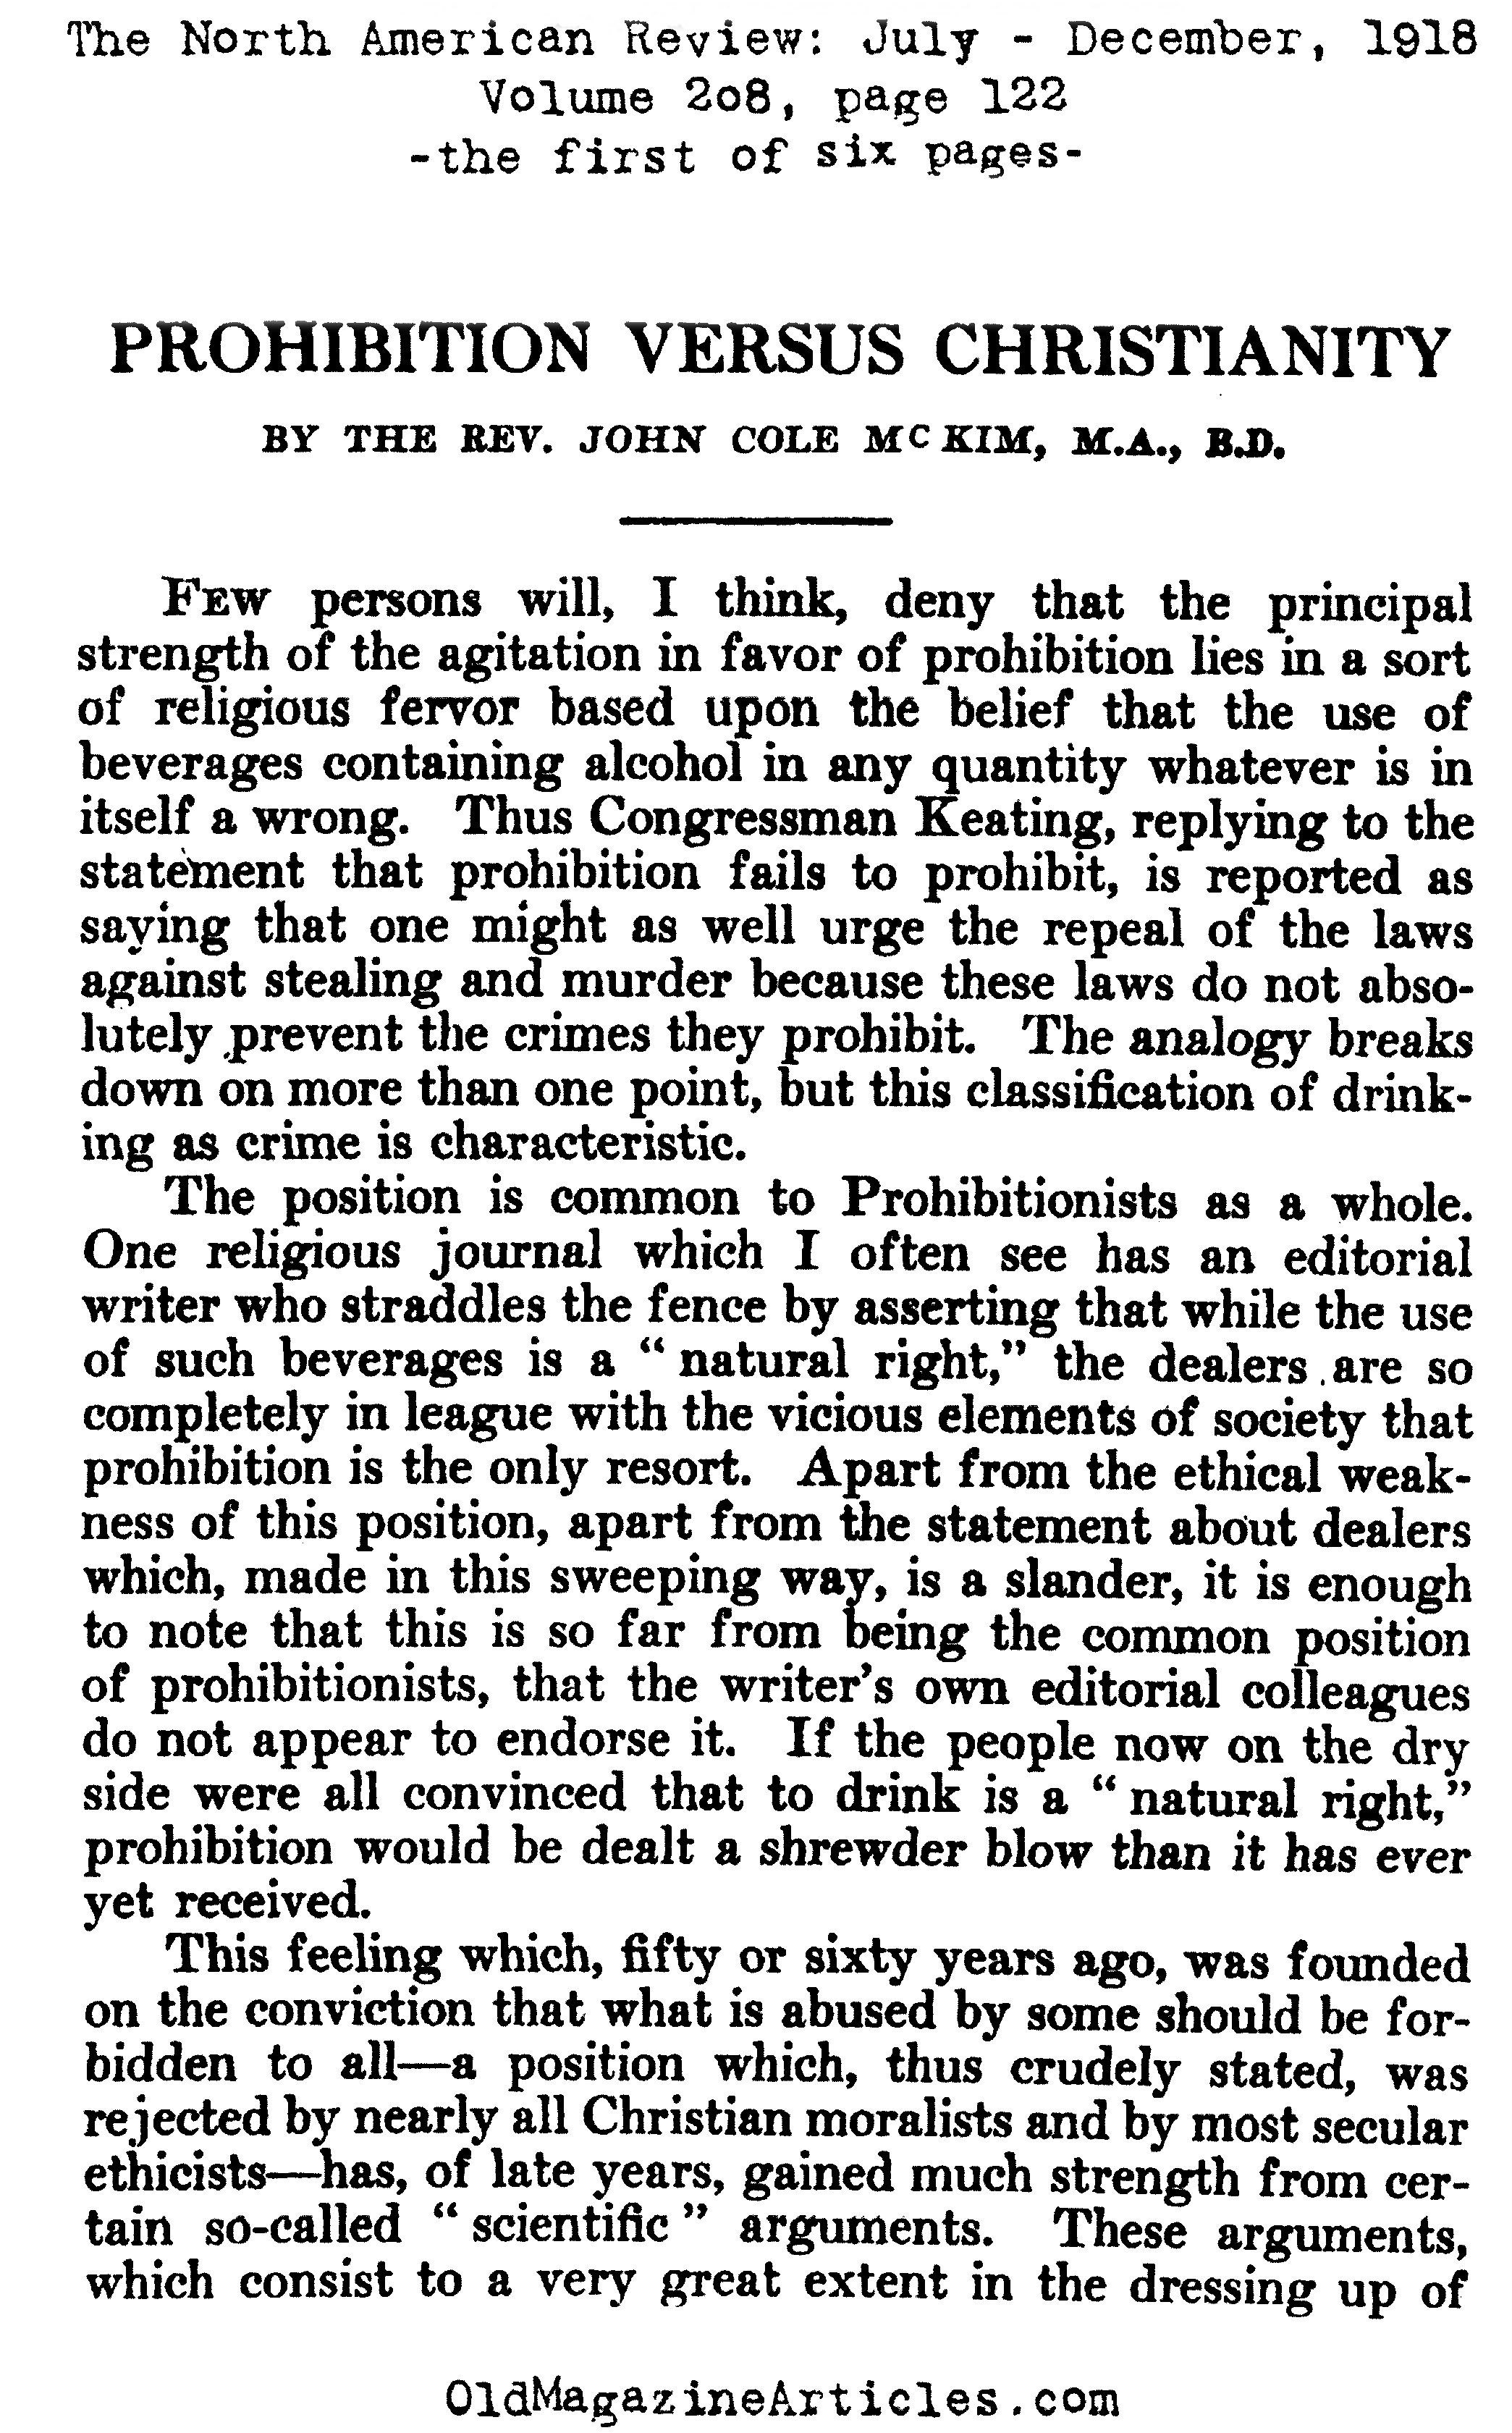 Christianity  Versus  Prohibition (The North American Review, 1918)